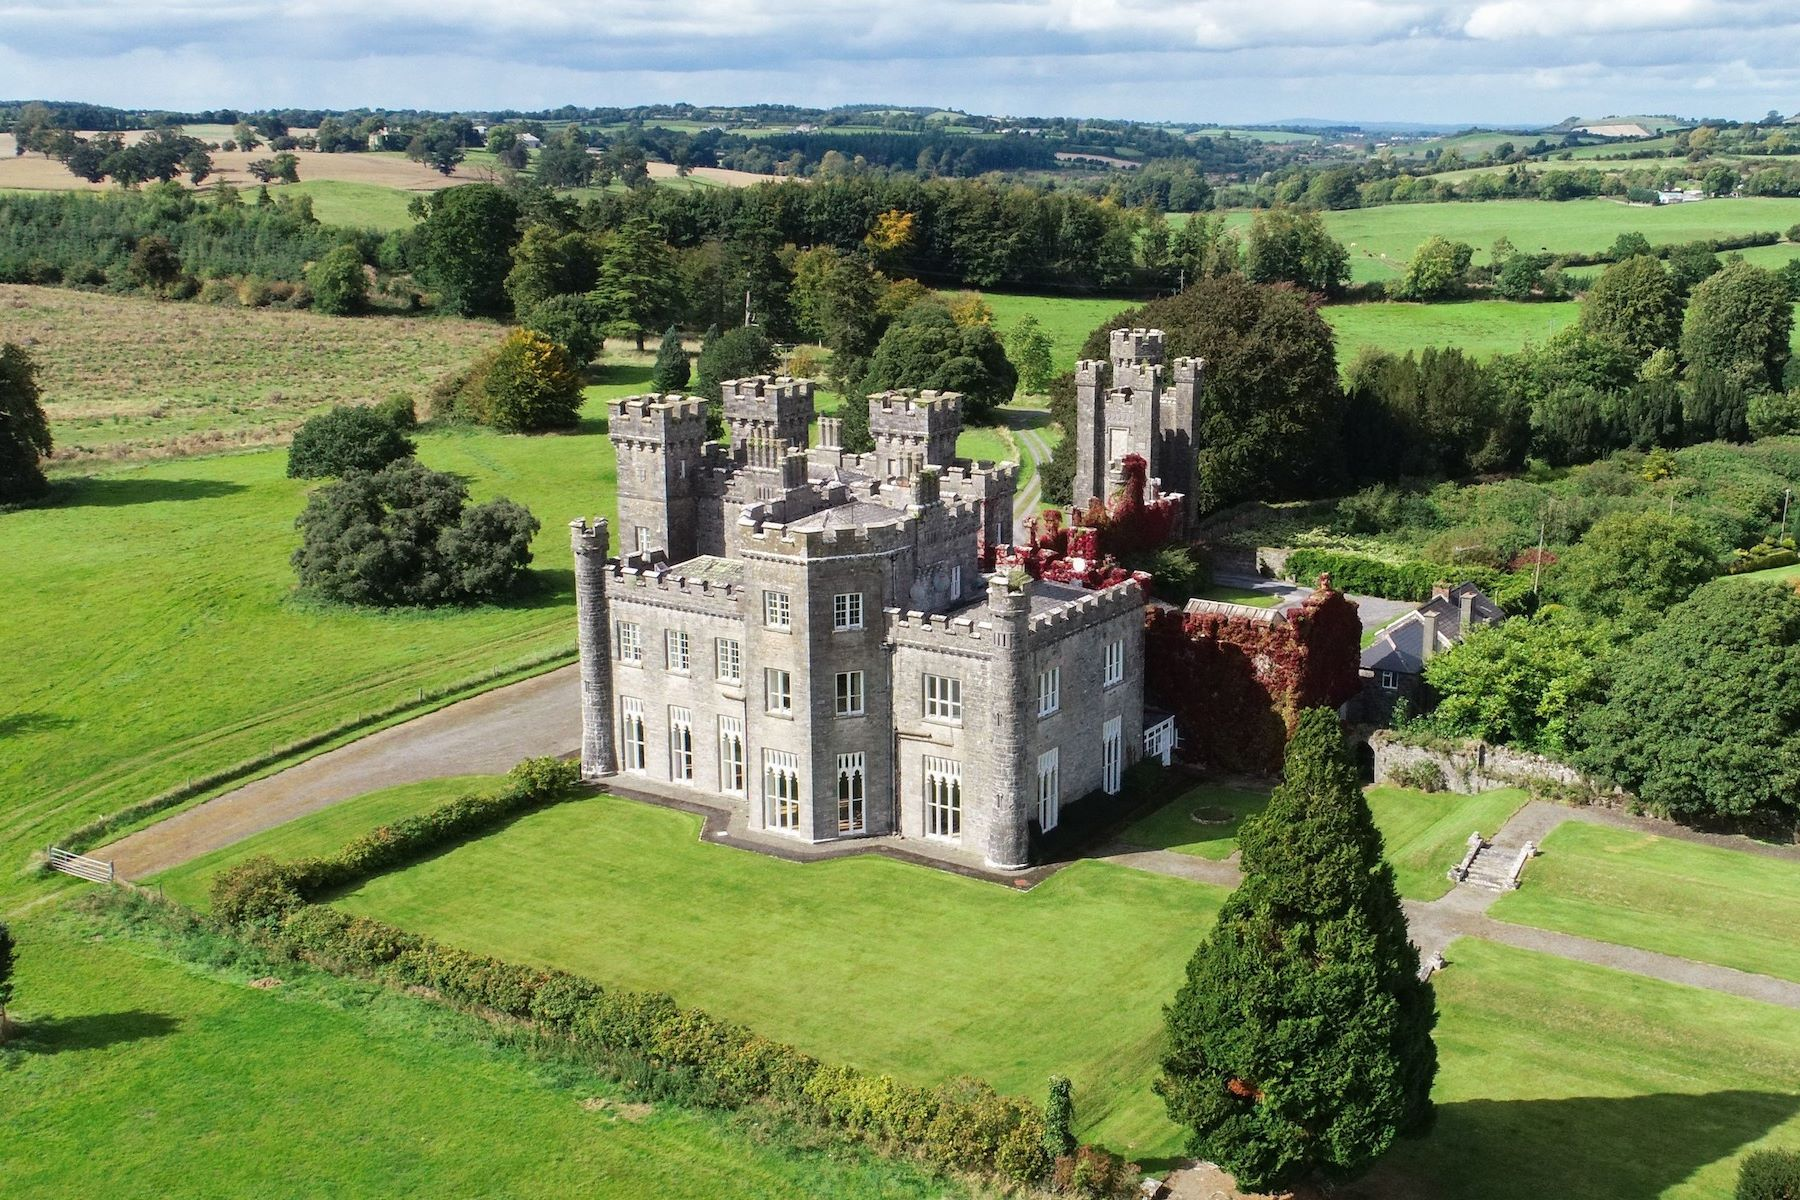 Single Family Home for Active at KNOCKDRIN CASTLE Mullingar, Leinster Ireland